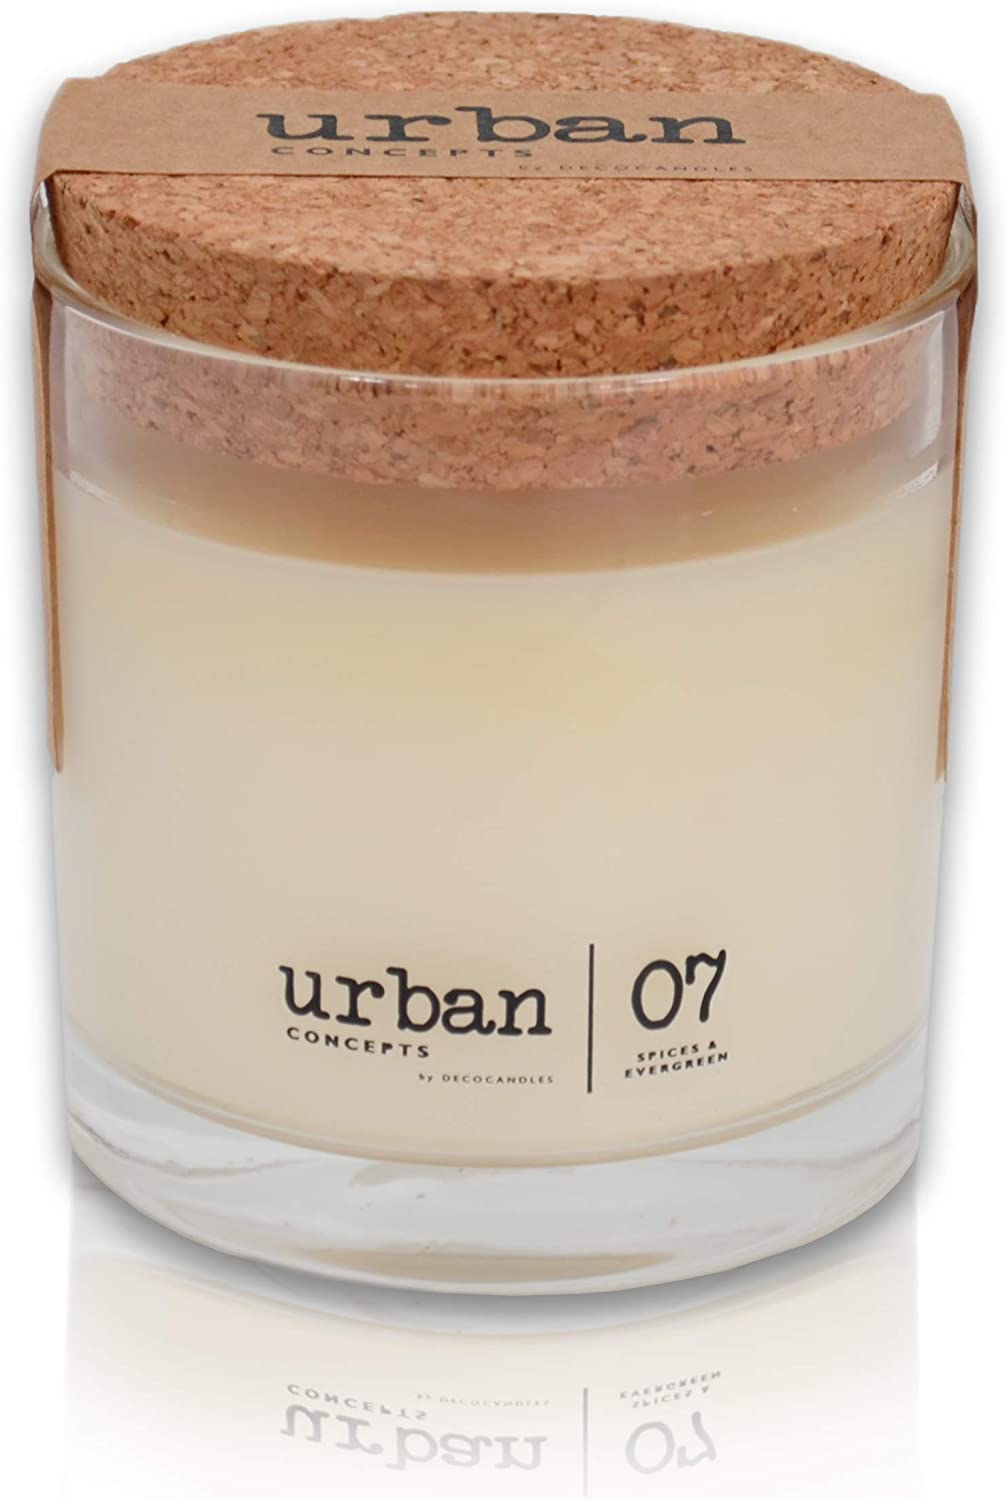 DECOCANDLES Urban Concepts Cozy - Mélange of Spices & Evergreen - Highly Scented Candle - Long Lasting - Hand Poured in The USA - Signature Scent for The Bohemian Hotel Asheville, NC - 6.7 Oz.